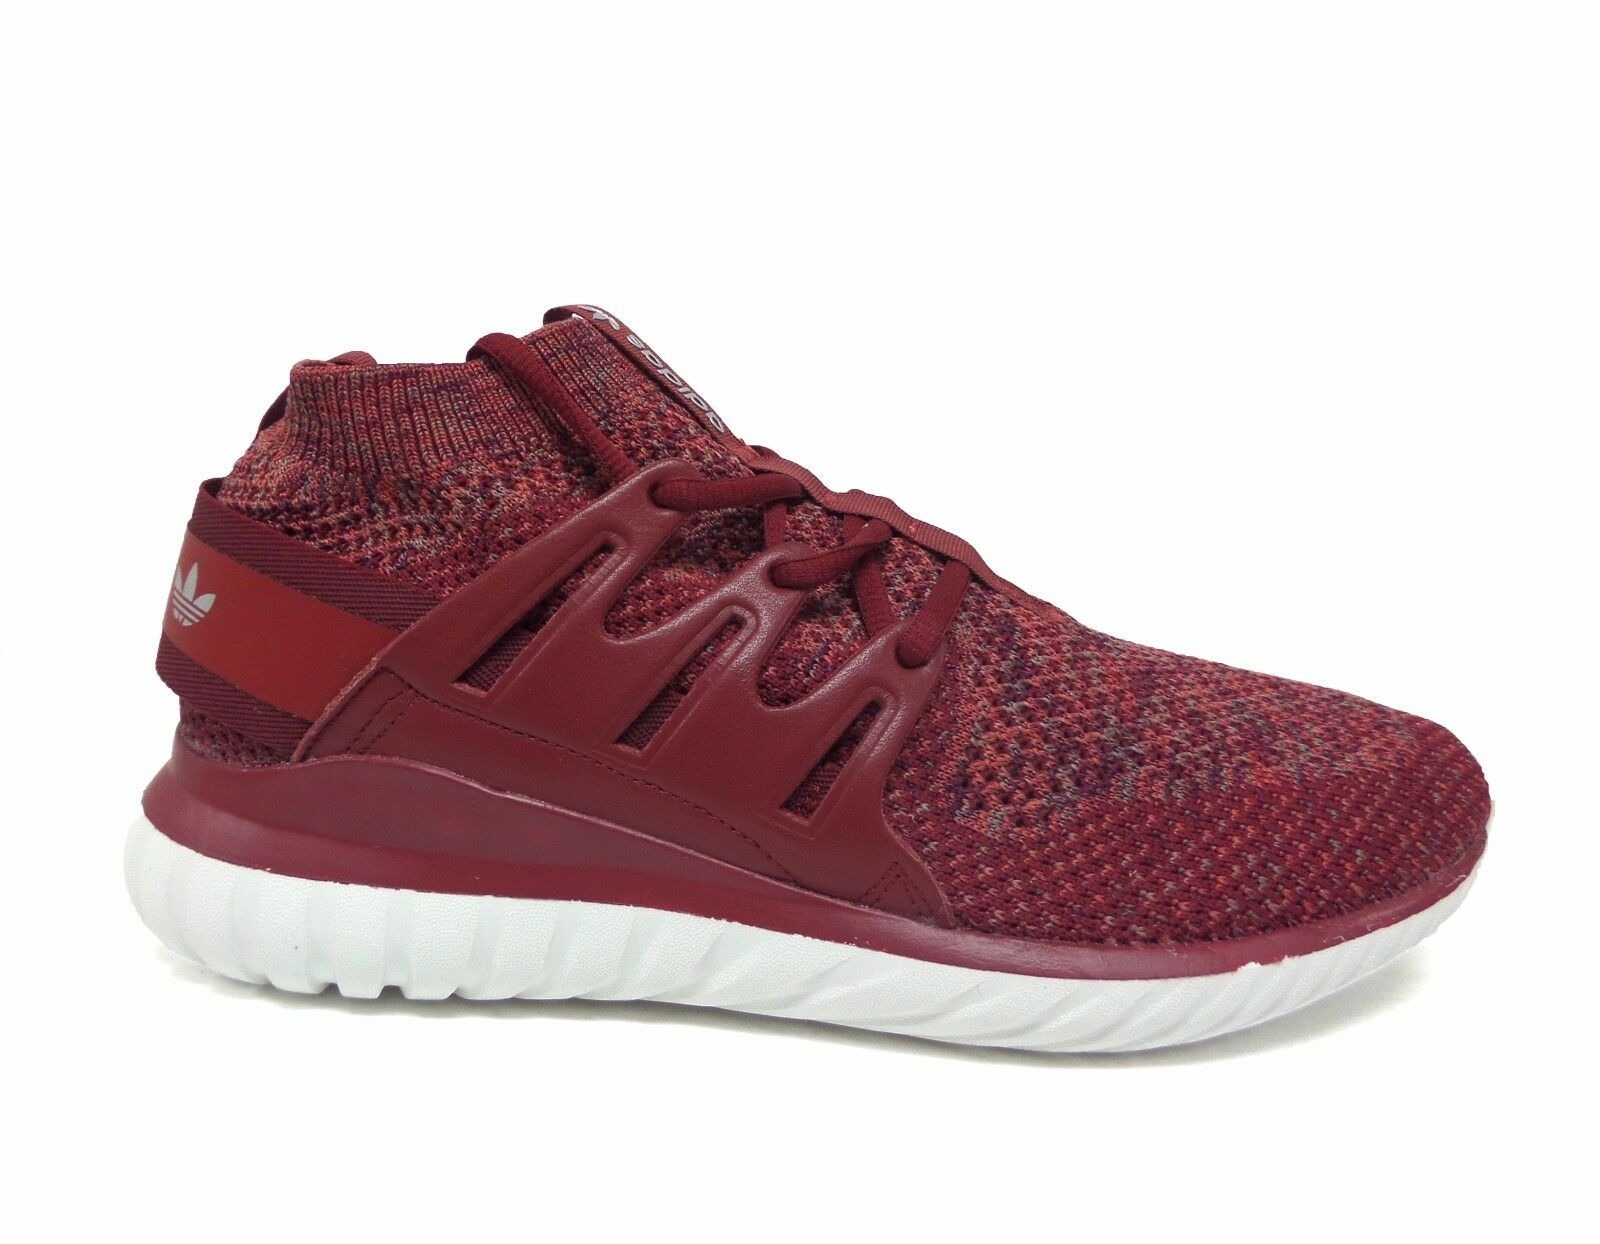 adidas Tubular Nova Primeknit Shoes LIFESTYLE FOOTWEAR